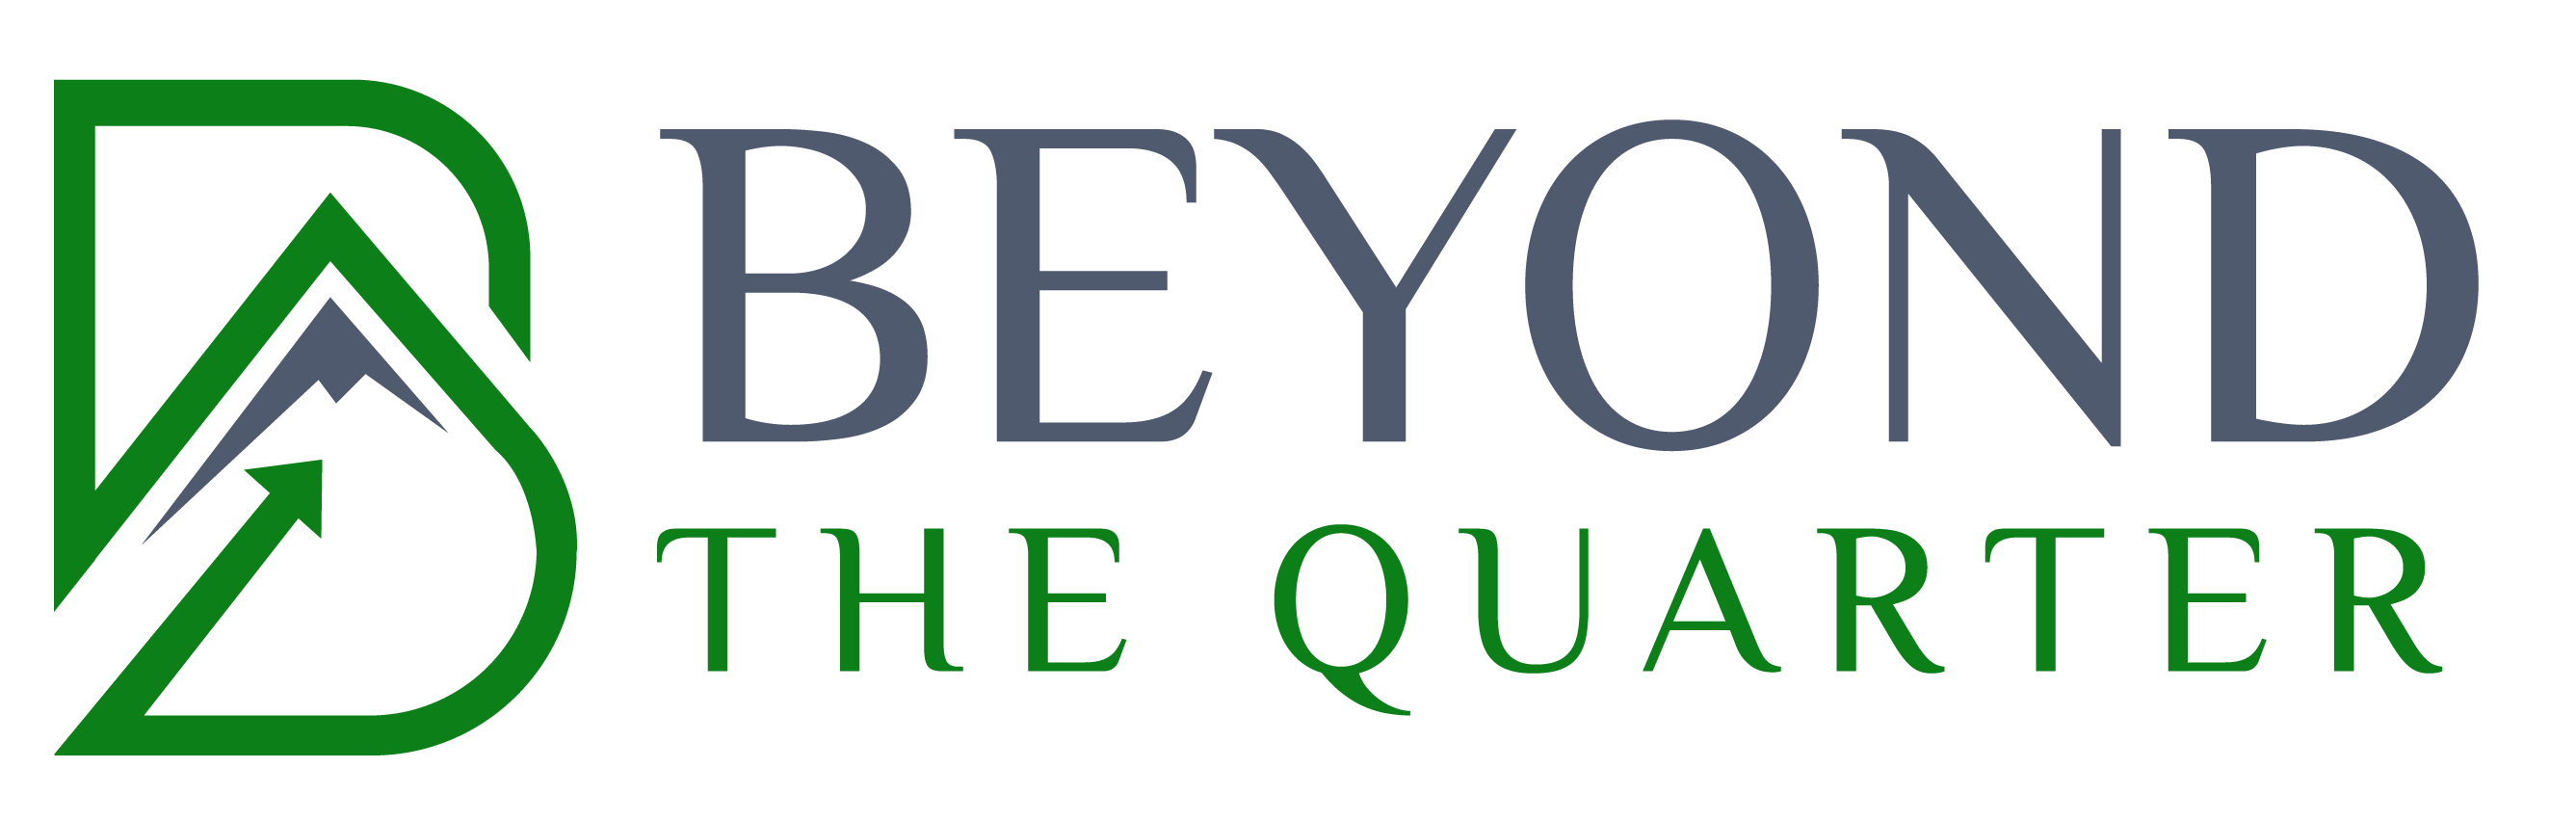 Beyond the Quarter